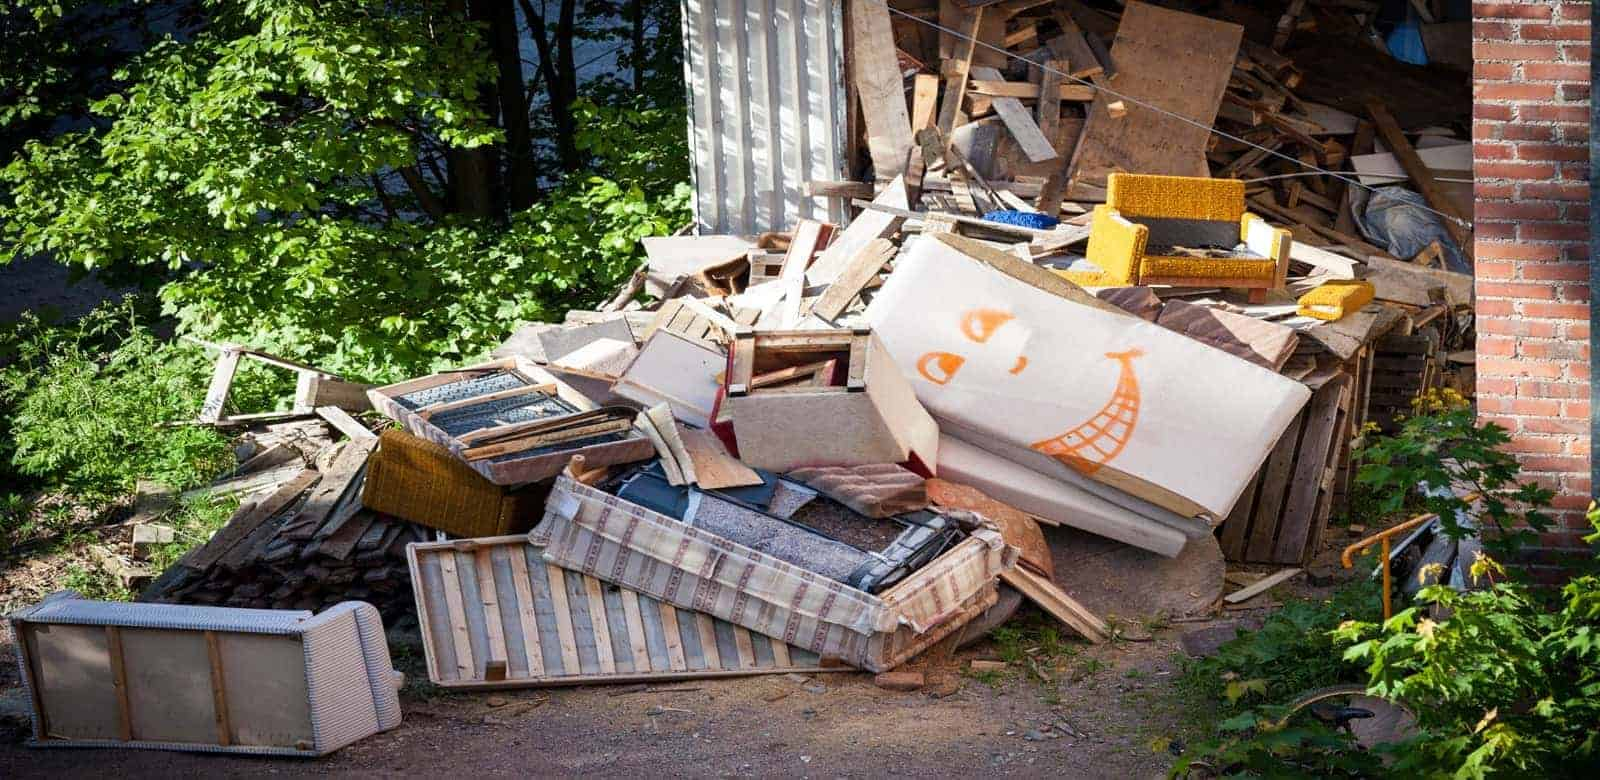 junk removers dallas